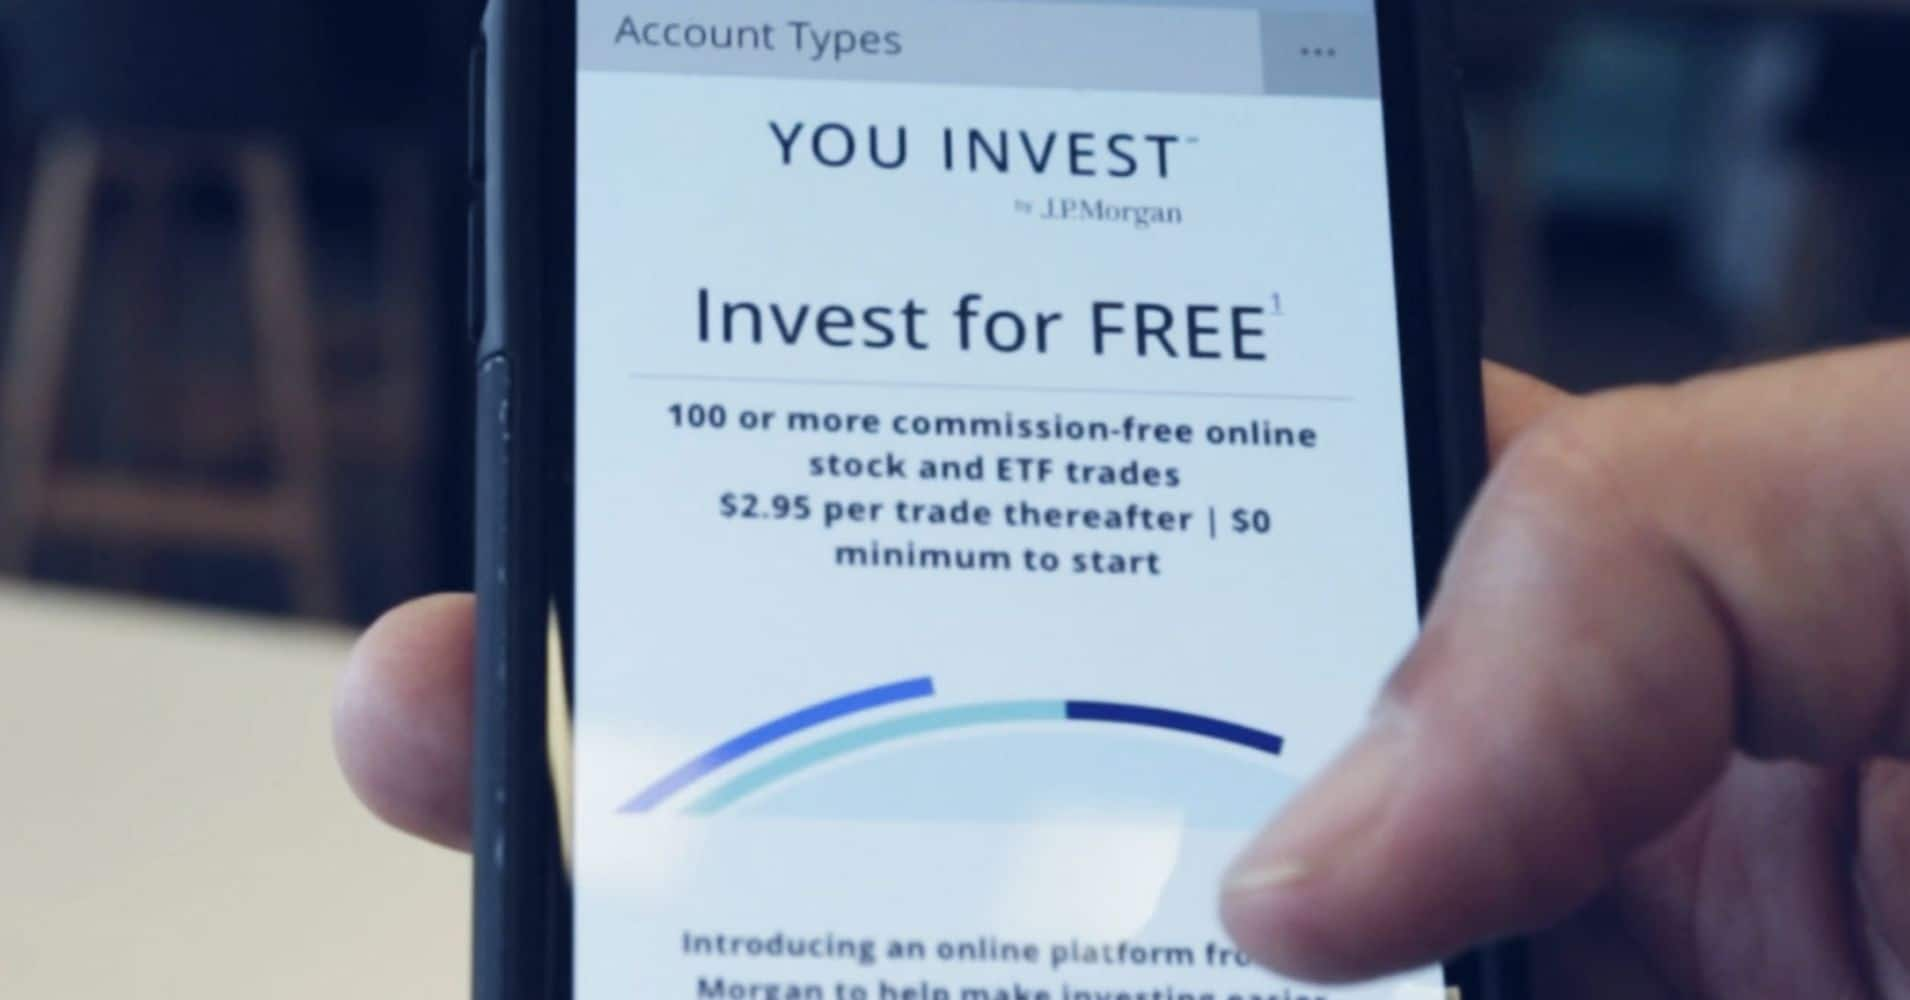 You Invest Trade Account: 100 Online Stock / ETF Trades in 1st Year